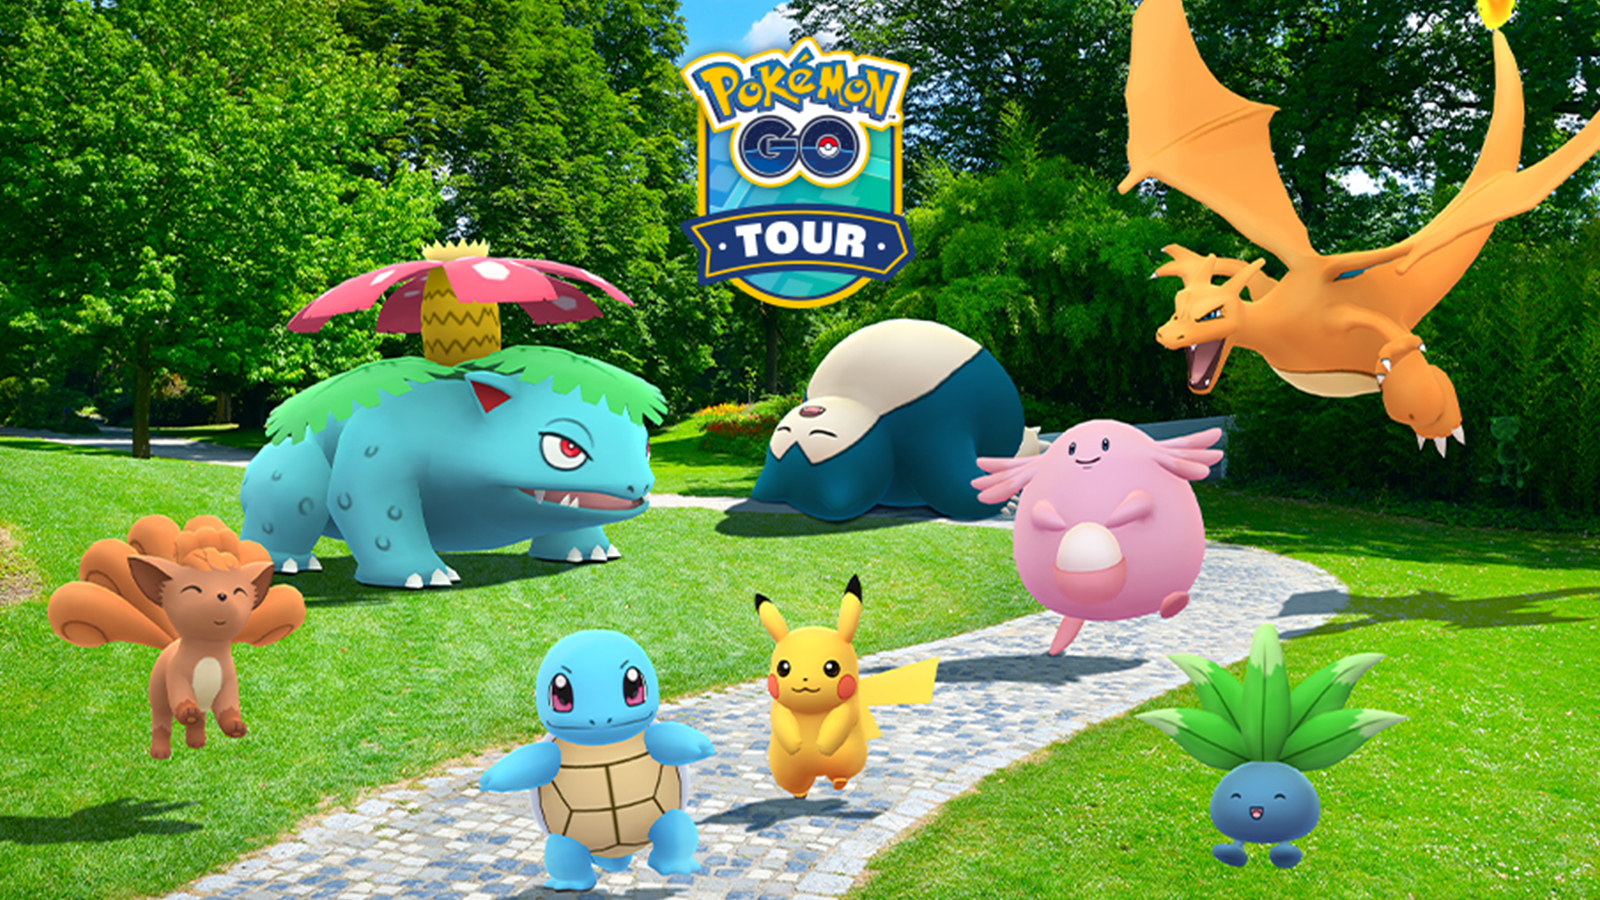 Pokemon GO Tour: Kanto